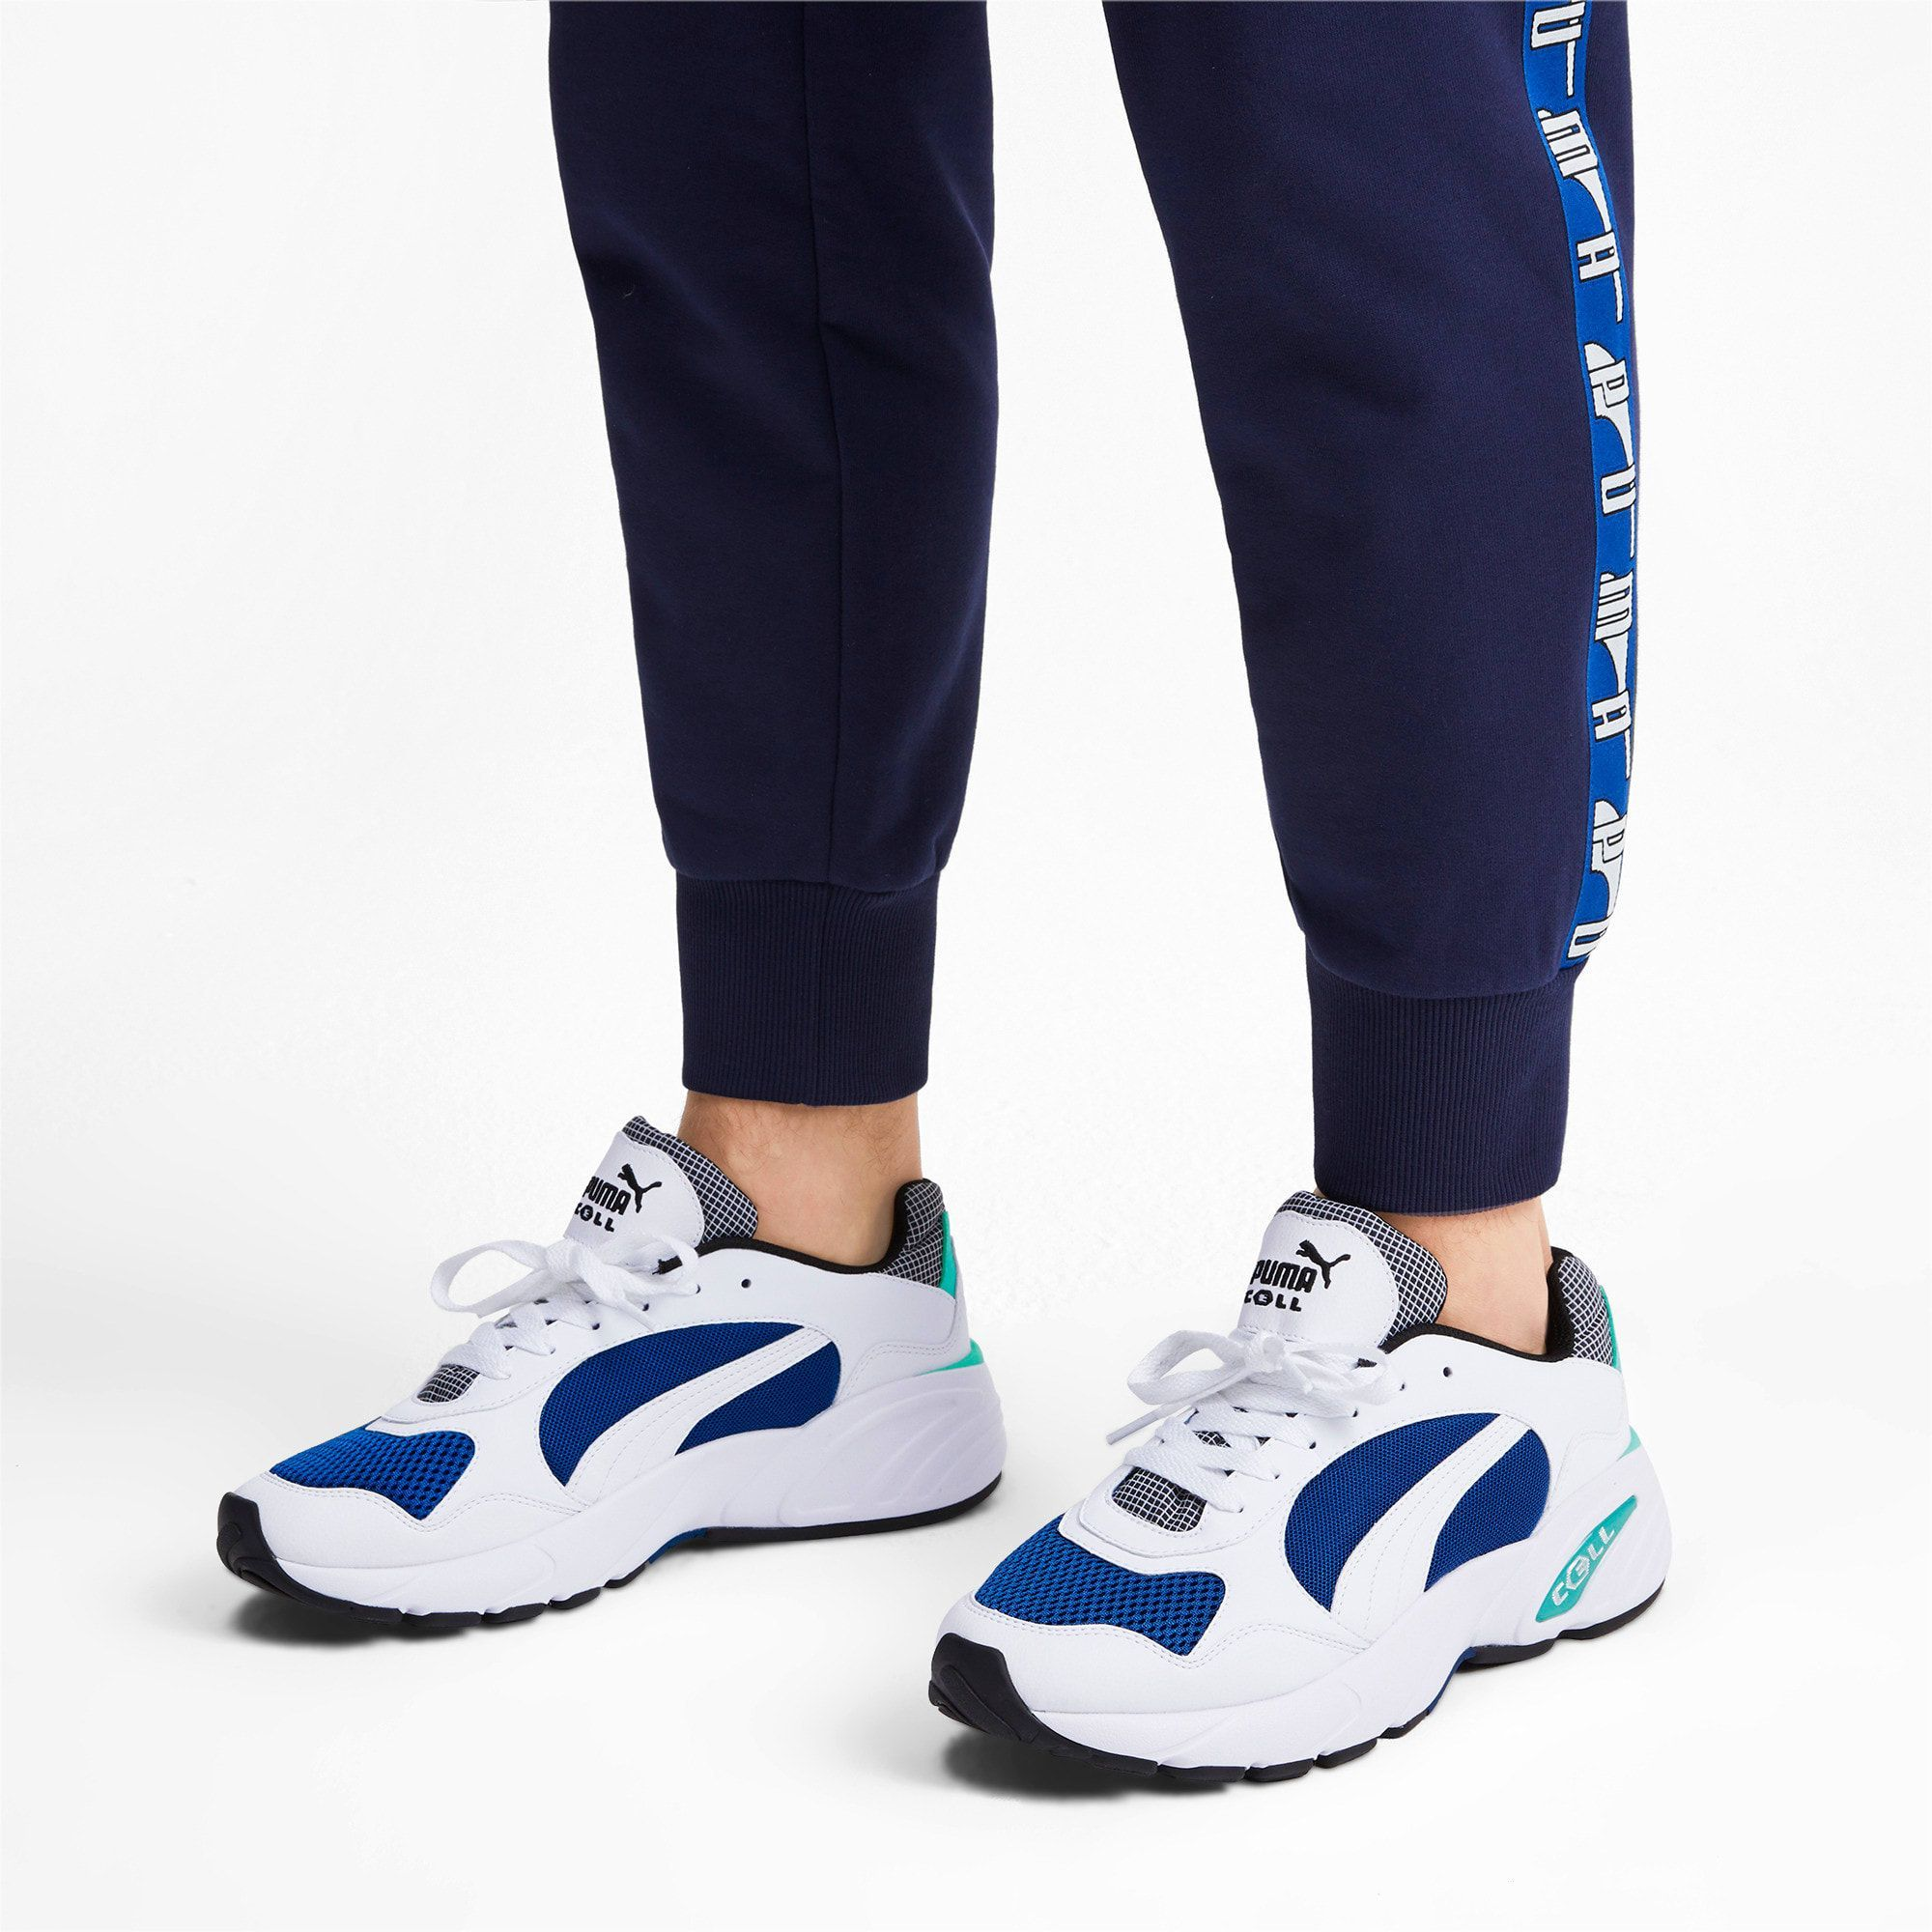 PUMA Cell Viper Street Racer Trainers